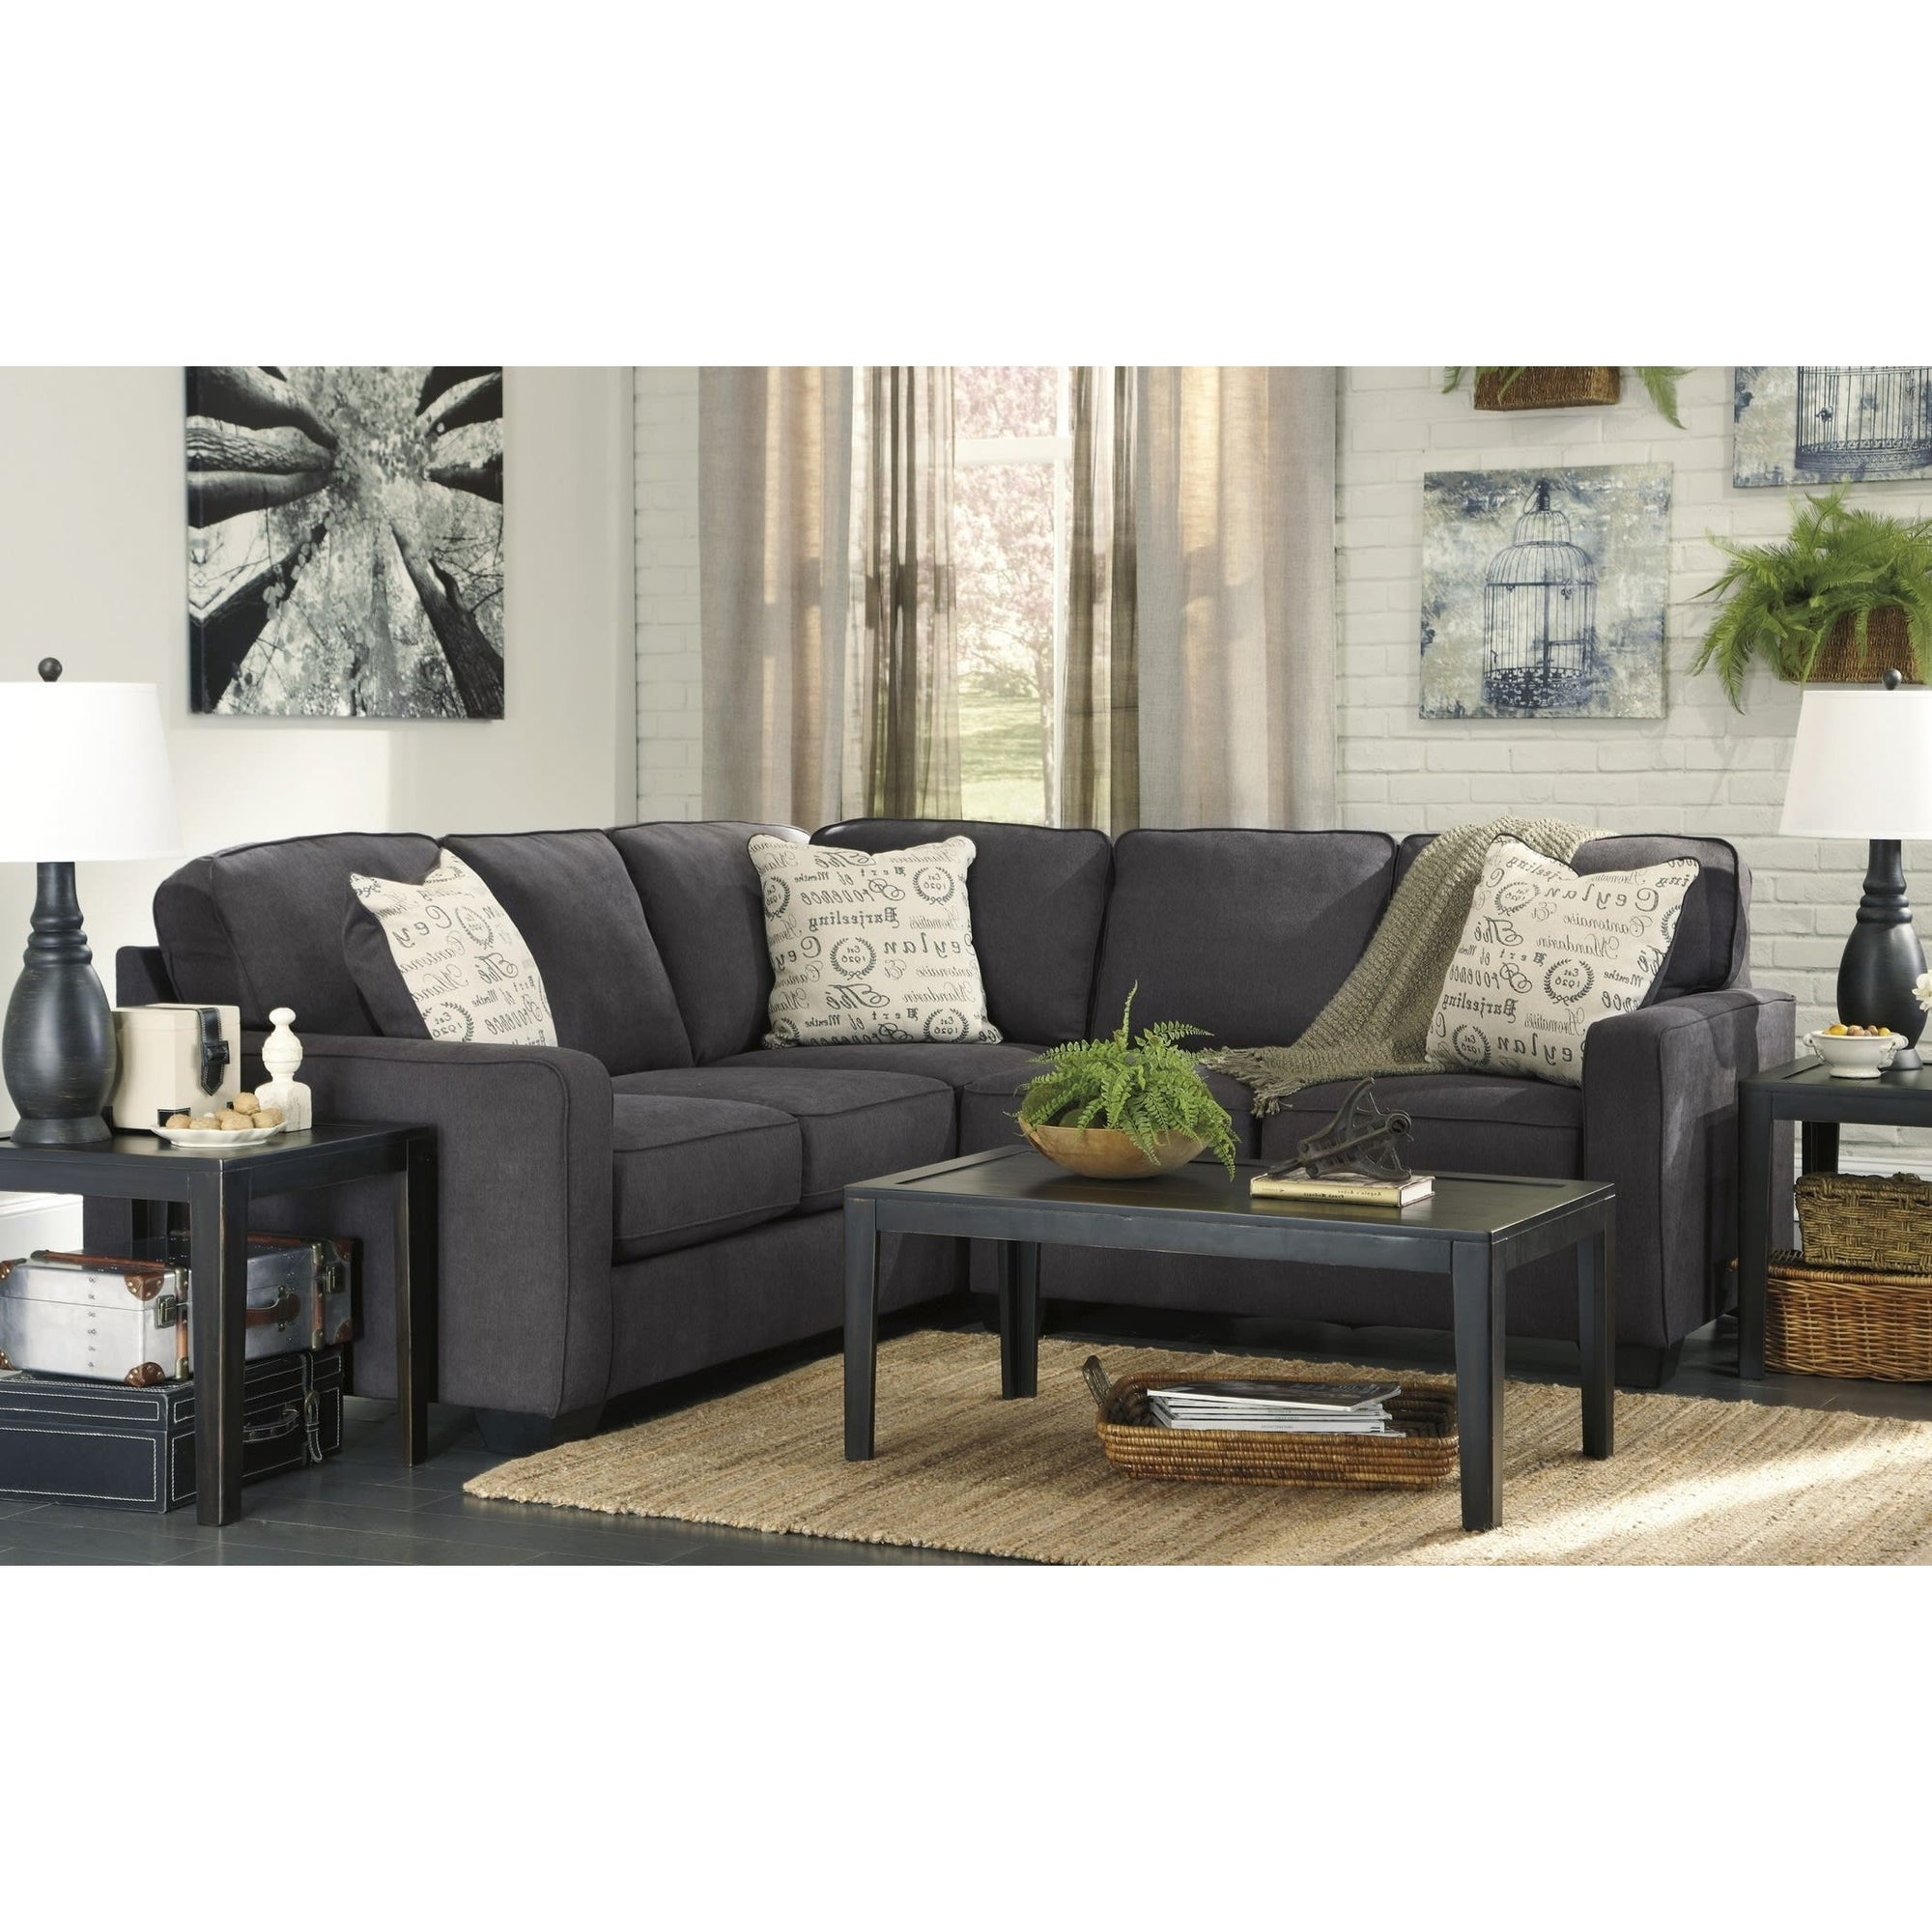 Bermuda Grey 2-Piece Sectional